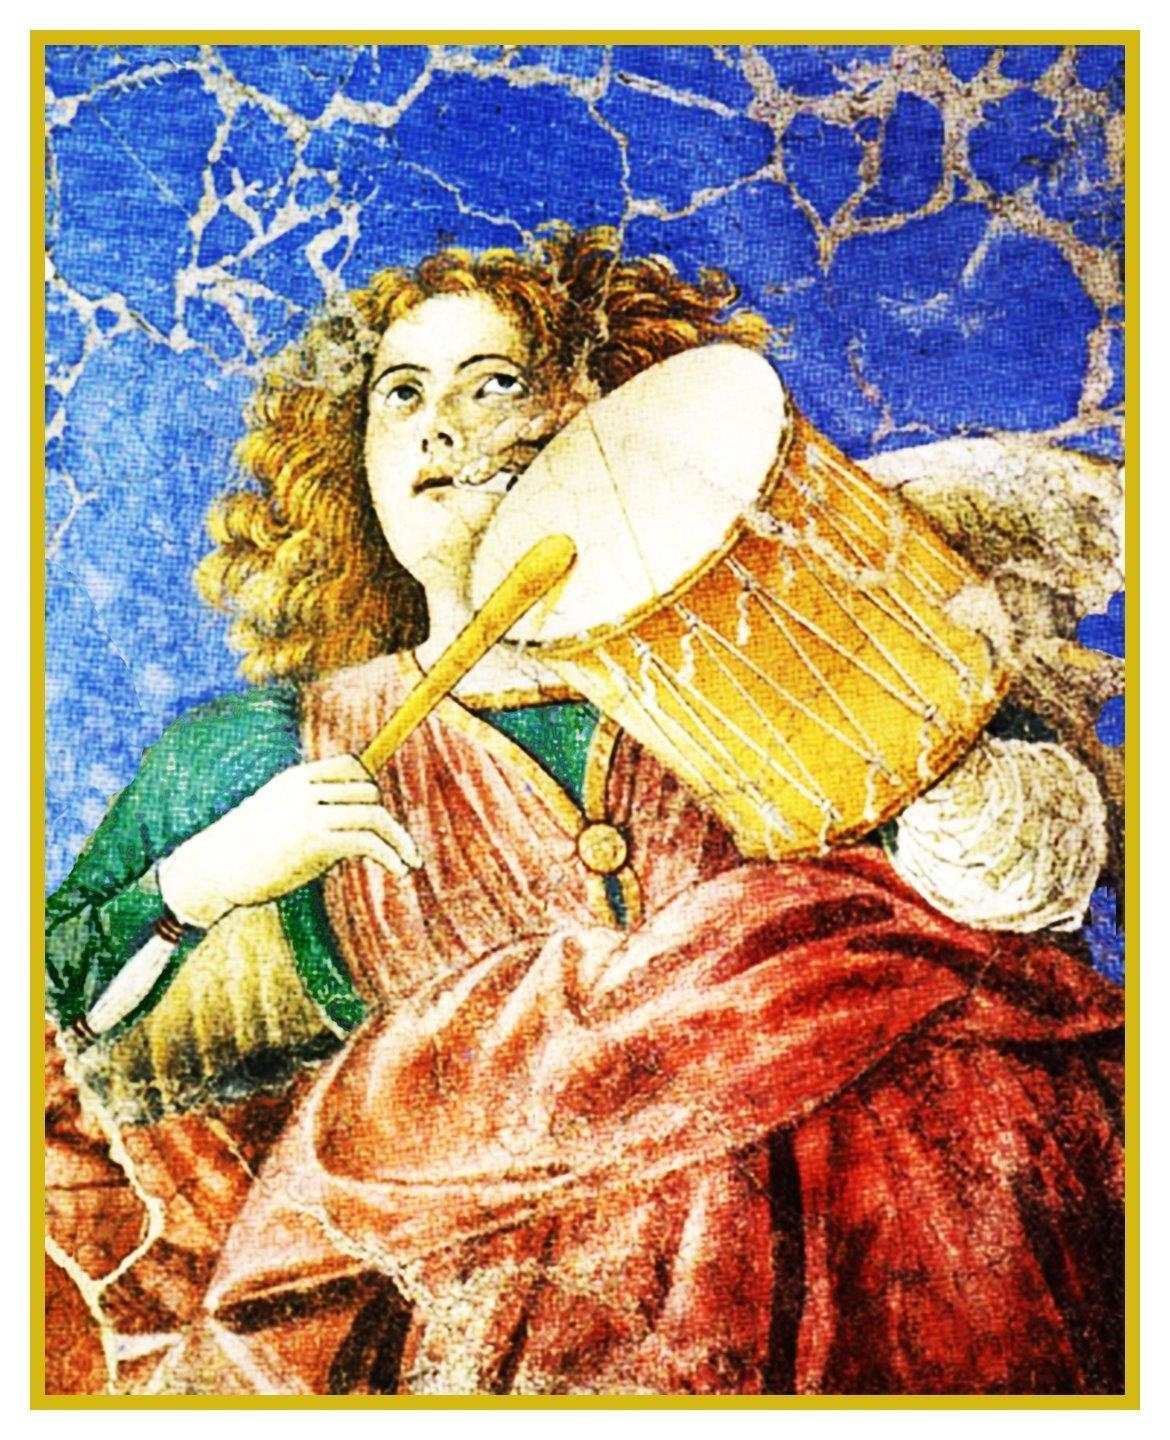 Melozzo da Forlì Choir of Angels Counted Cross Stitch Chart Pattern